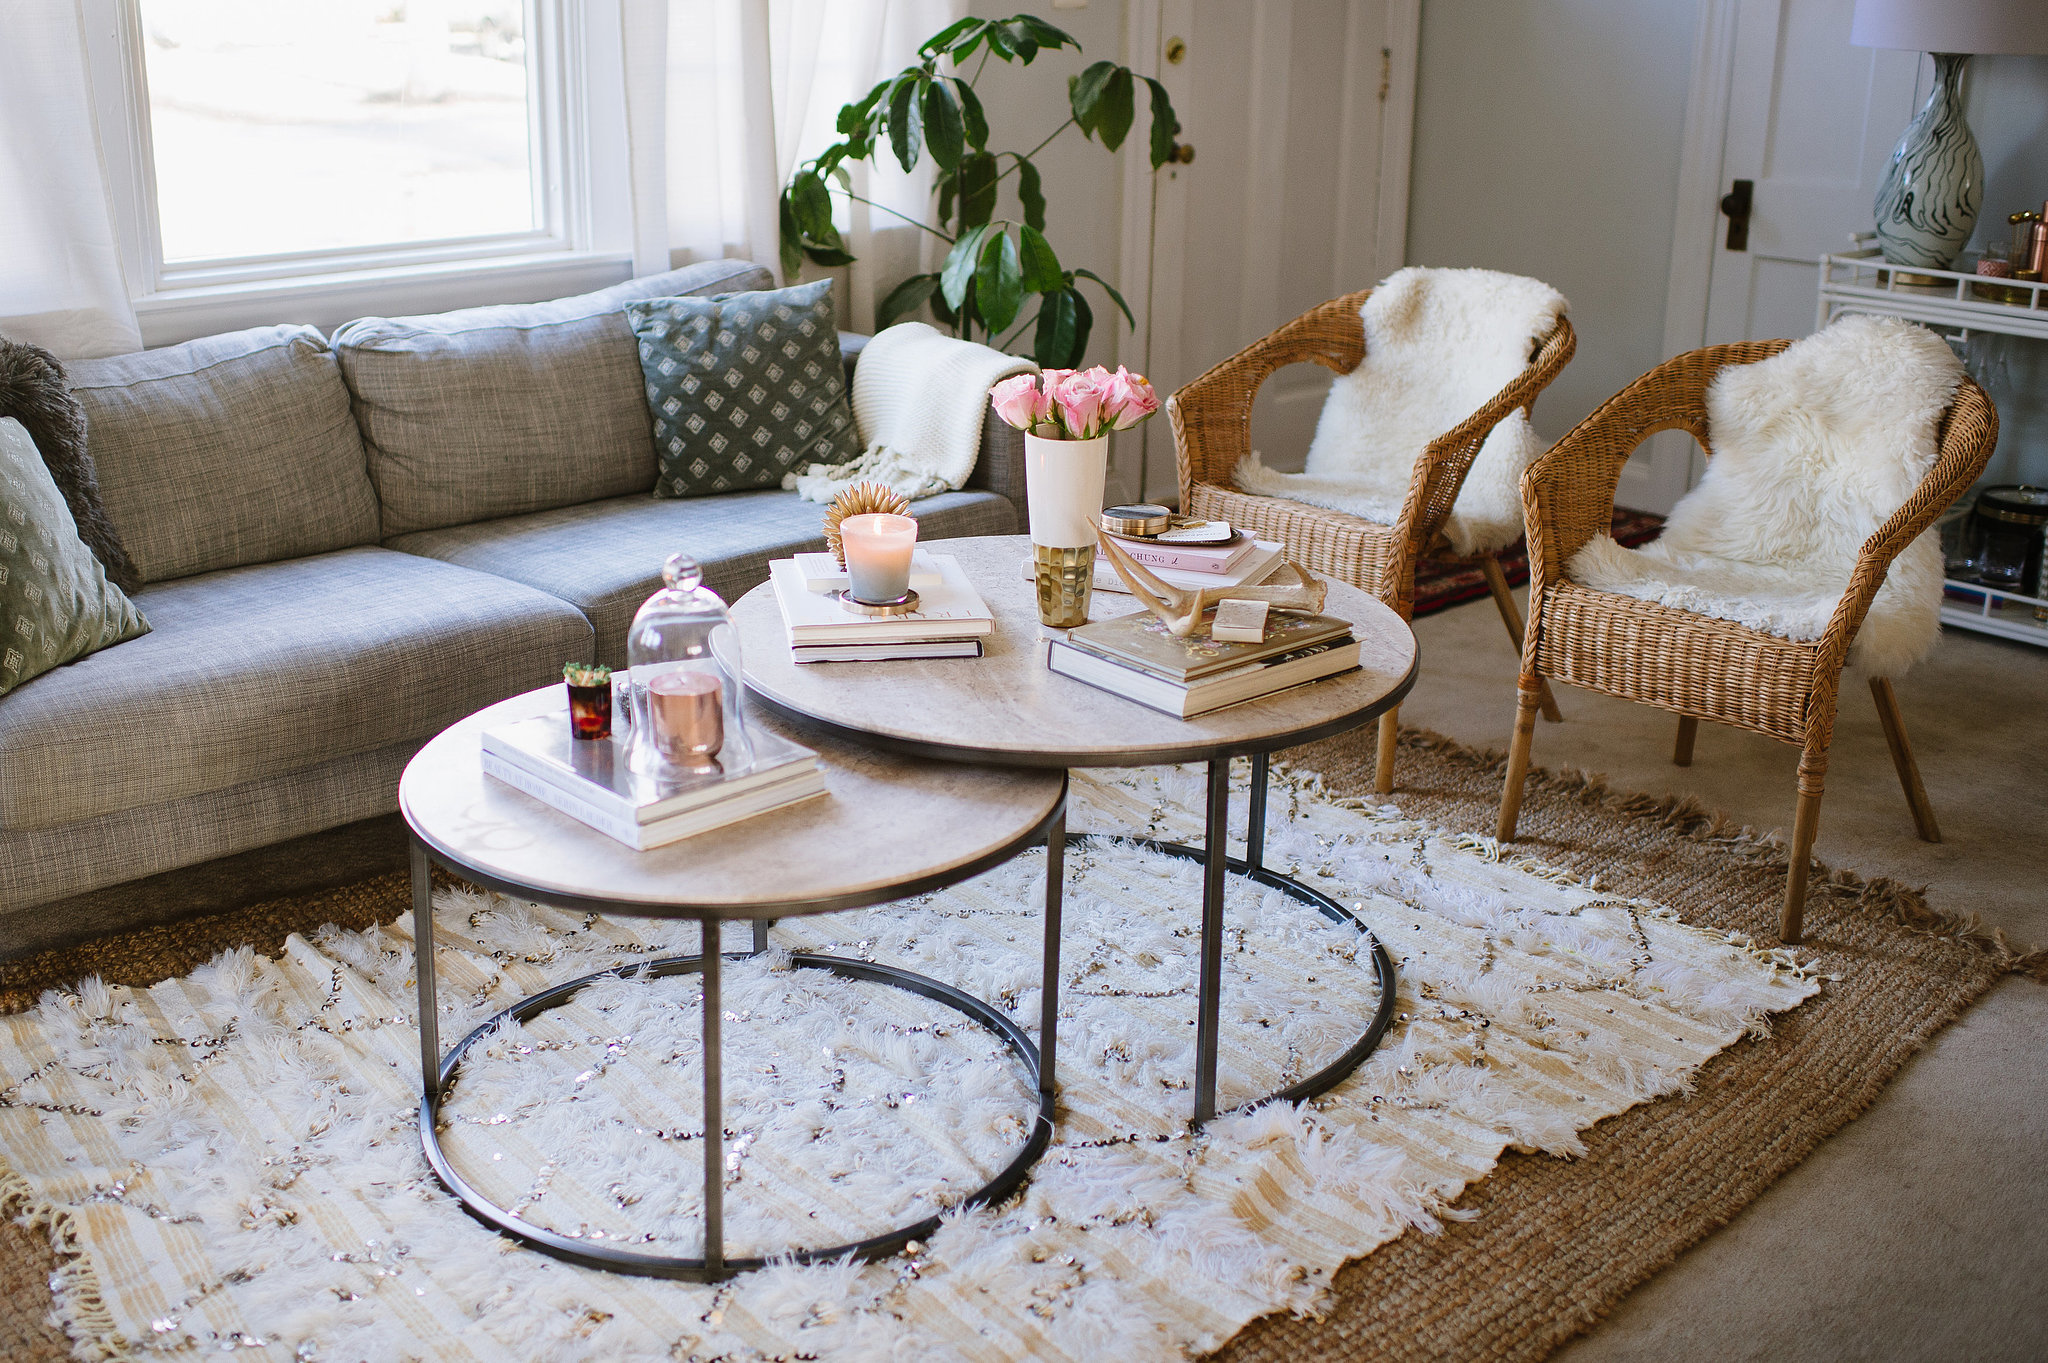 Carpet in a home or rental can be challenging, but layering rugs is a great solution.  Source: Natalie Franke